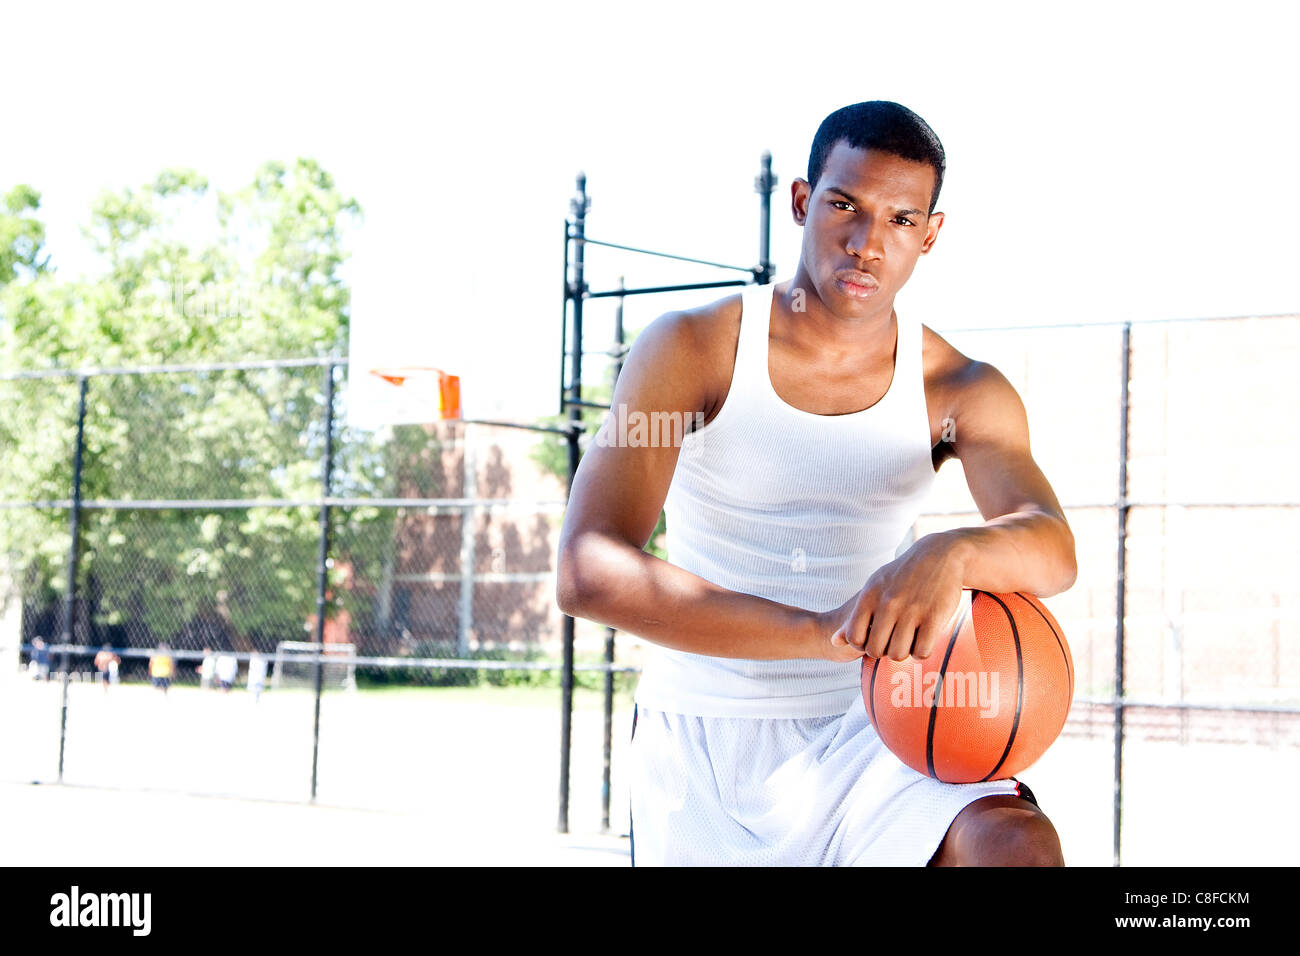 Handsome basketball player - Stock Image